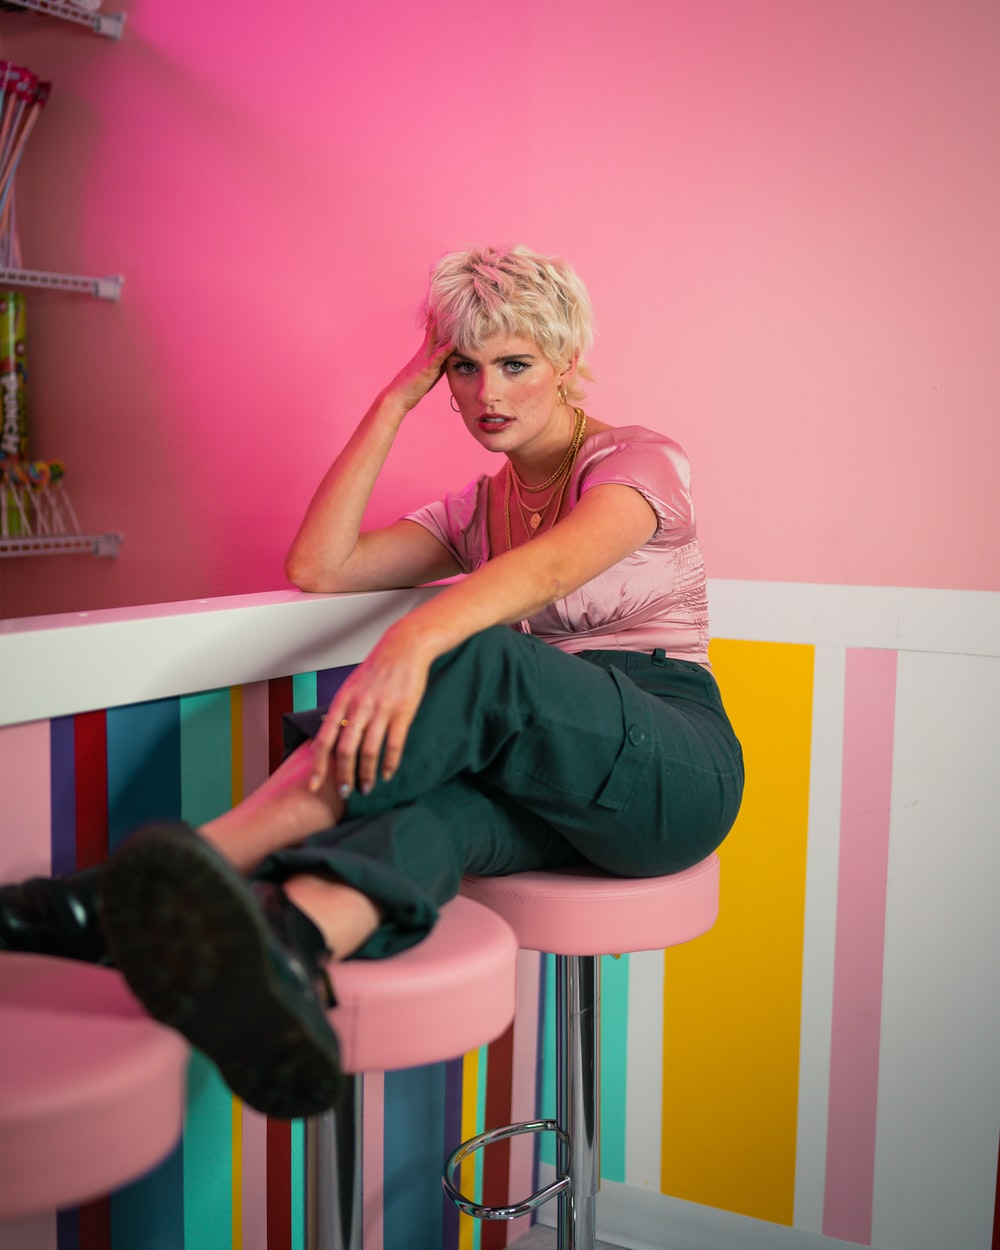 woman in pink shirt and black pants sitting on white and pink wooden chair